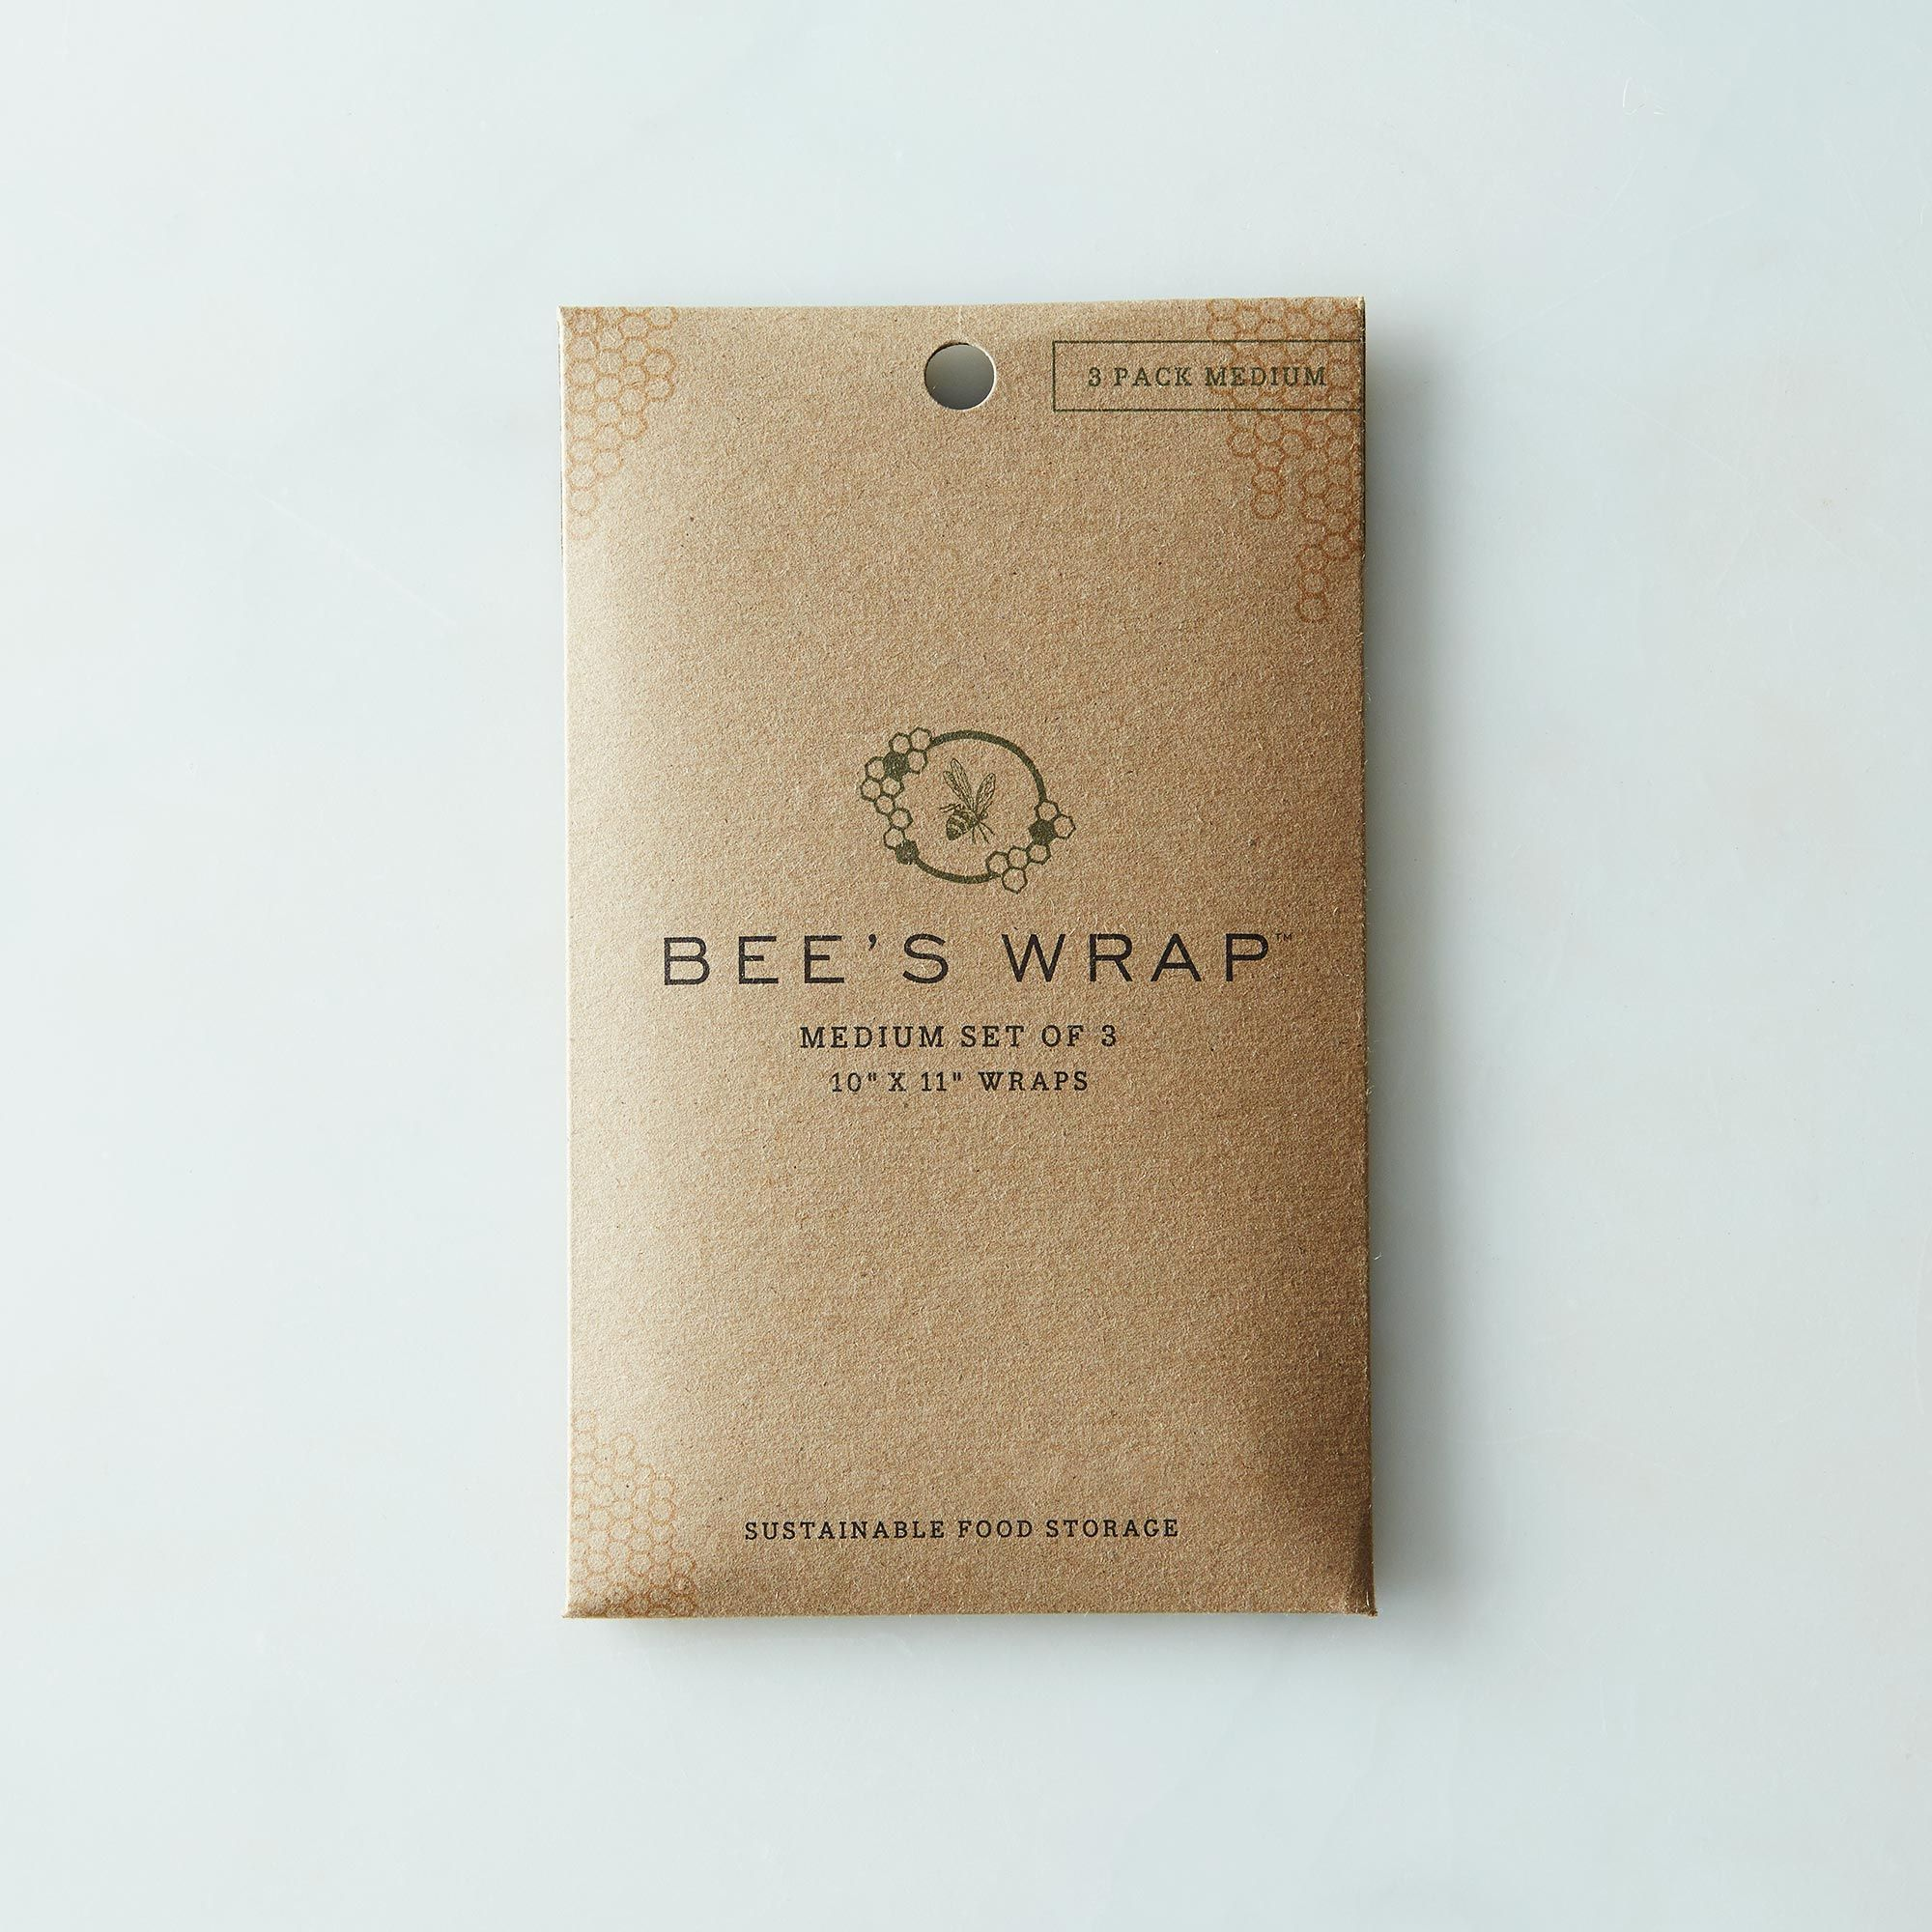 D3ea00c0 1c32 4513 b292 fba7231cc554  bees wrap medium set of 3 provisions mark weinberg 05 11 14 0410 silo